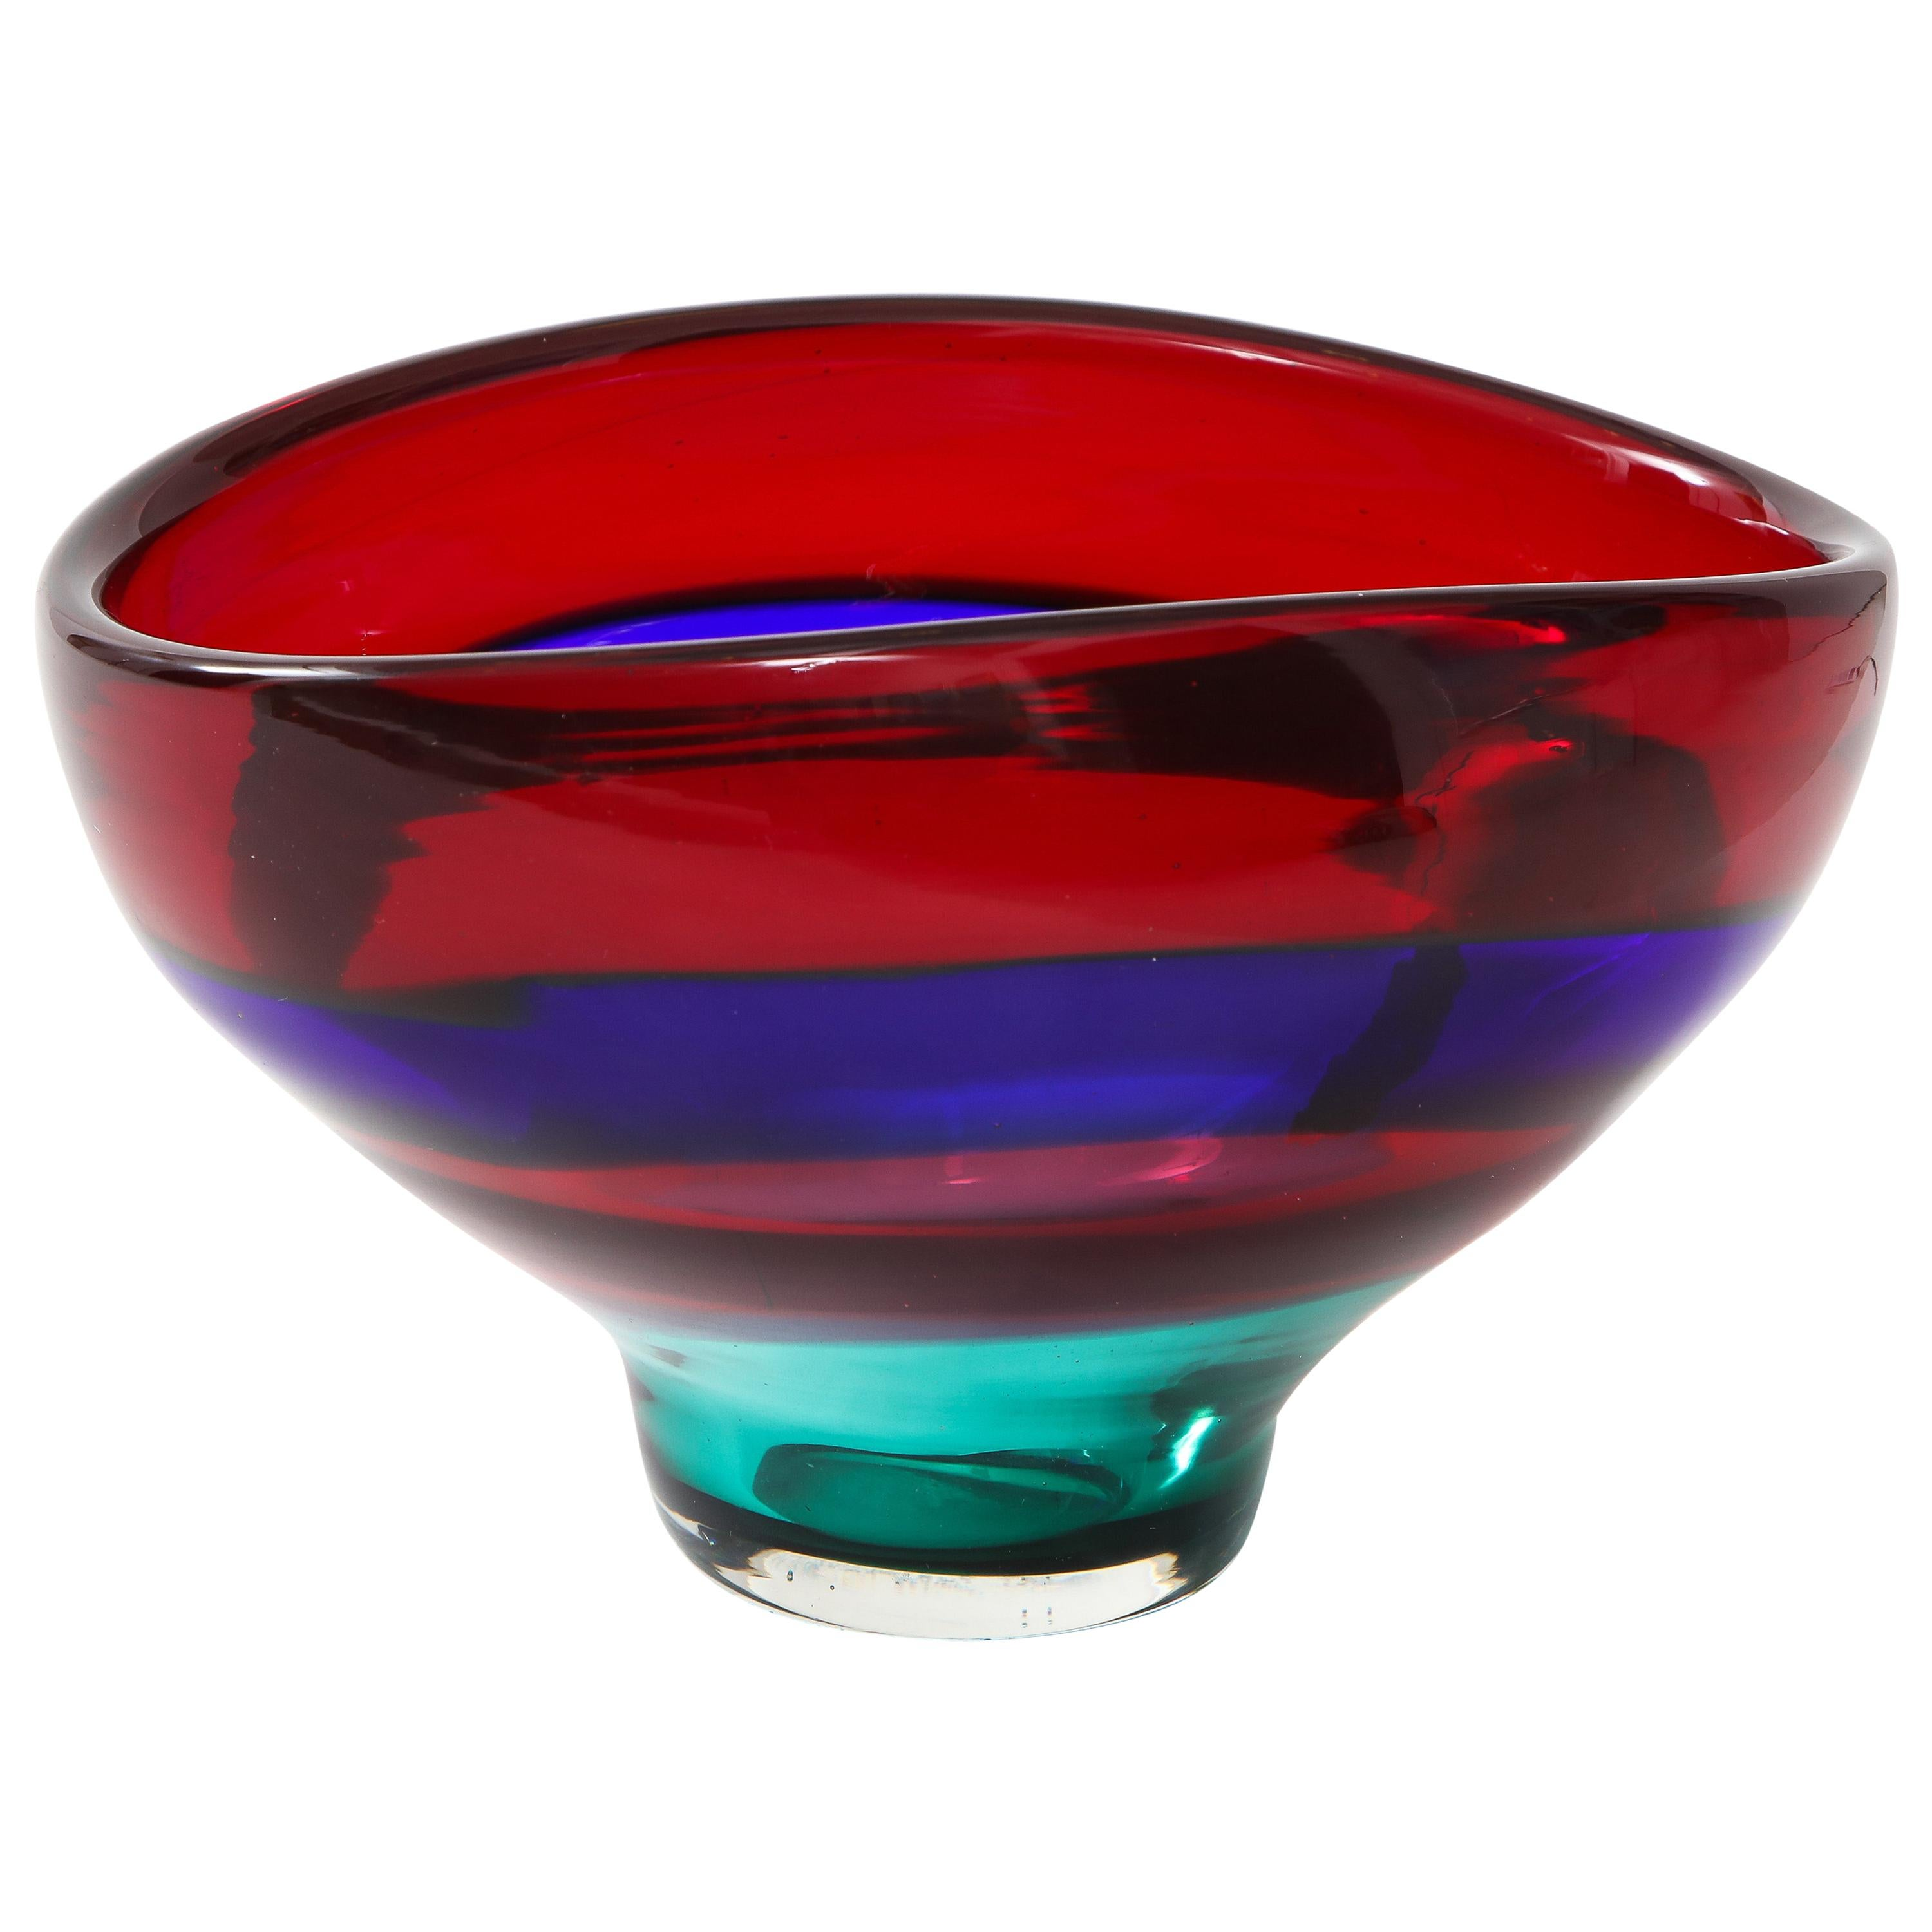 Vibrant Red Blue and Green Murano Glass Bowl by Fluvio Bianconi